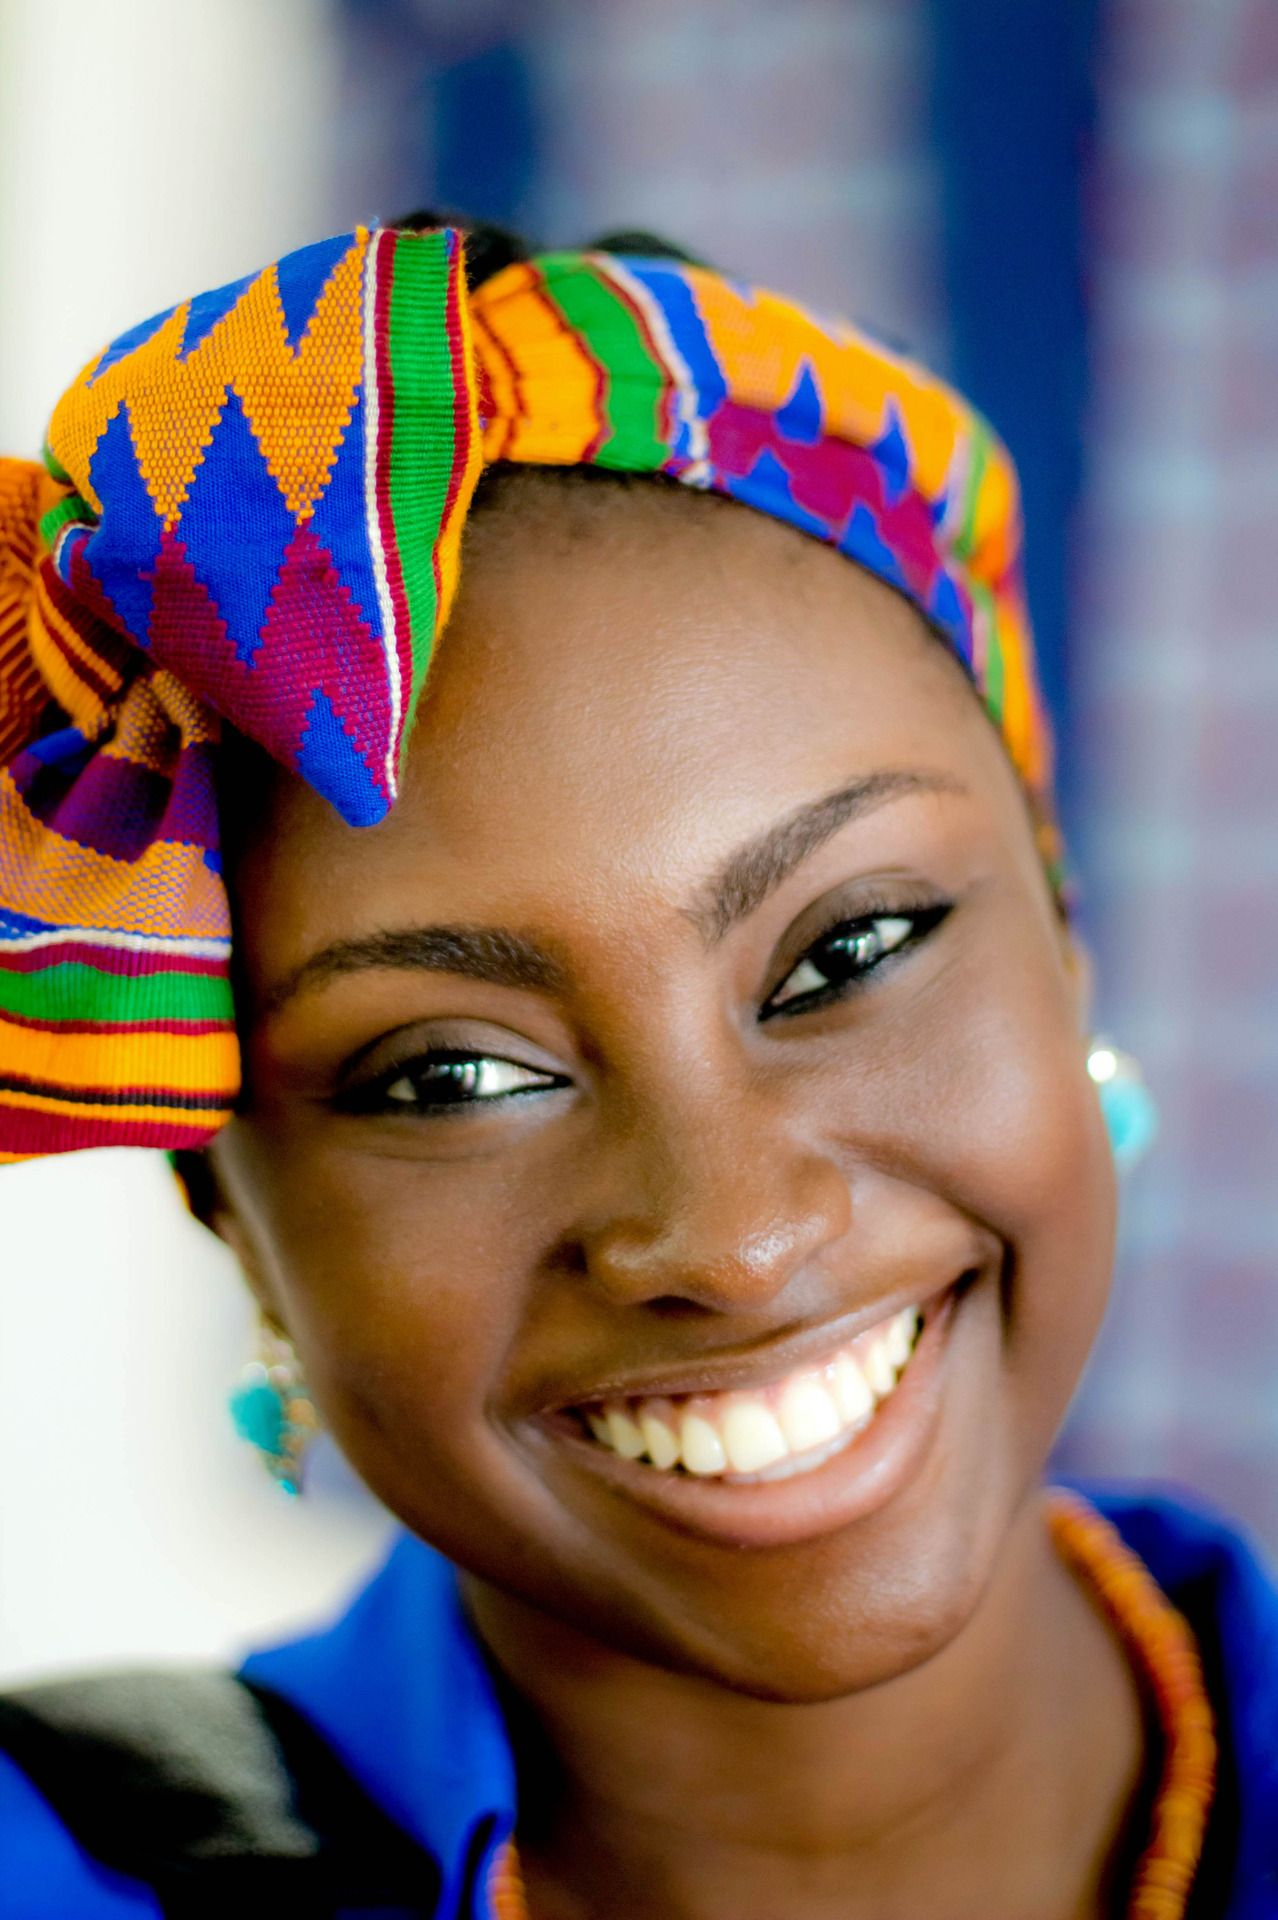 Falling In Love With African Fashion Oreosandheartbreaks Oh Yes I Have Dimple It Beautiful Smile Happy People Smile Face